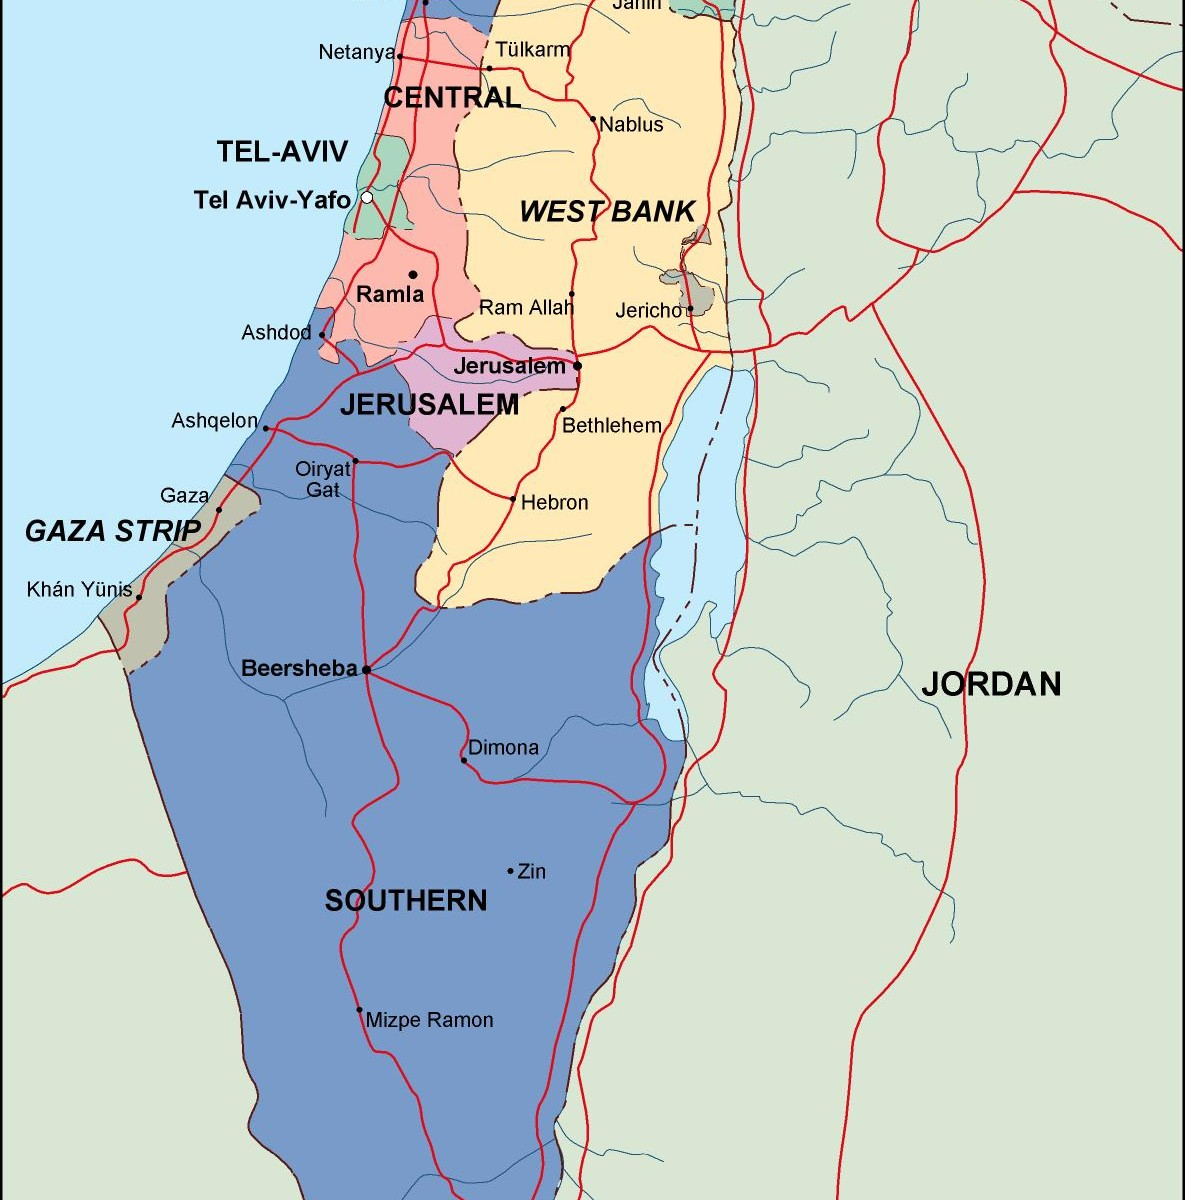 israel political map Eps Illustrator Map Our cartographers have